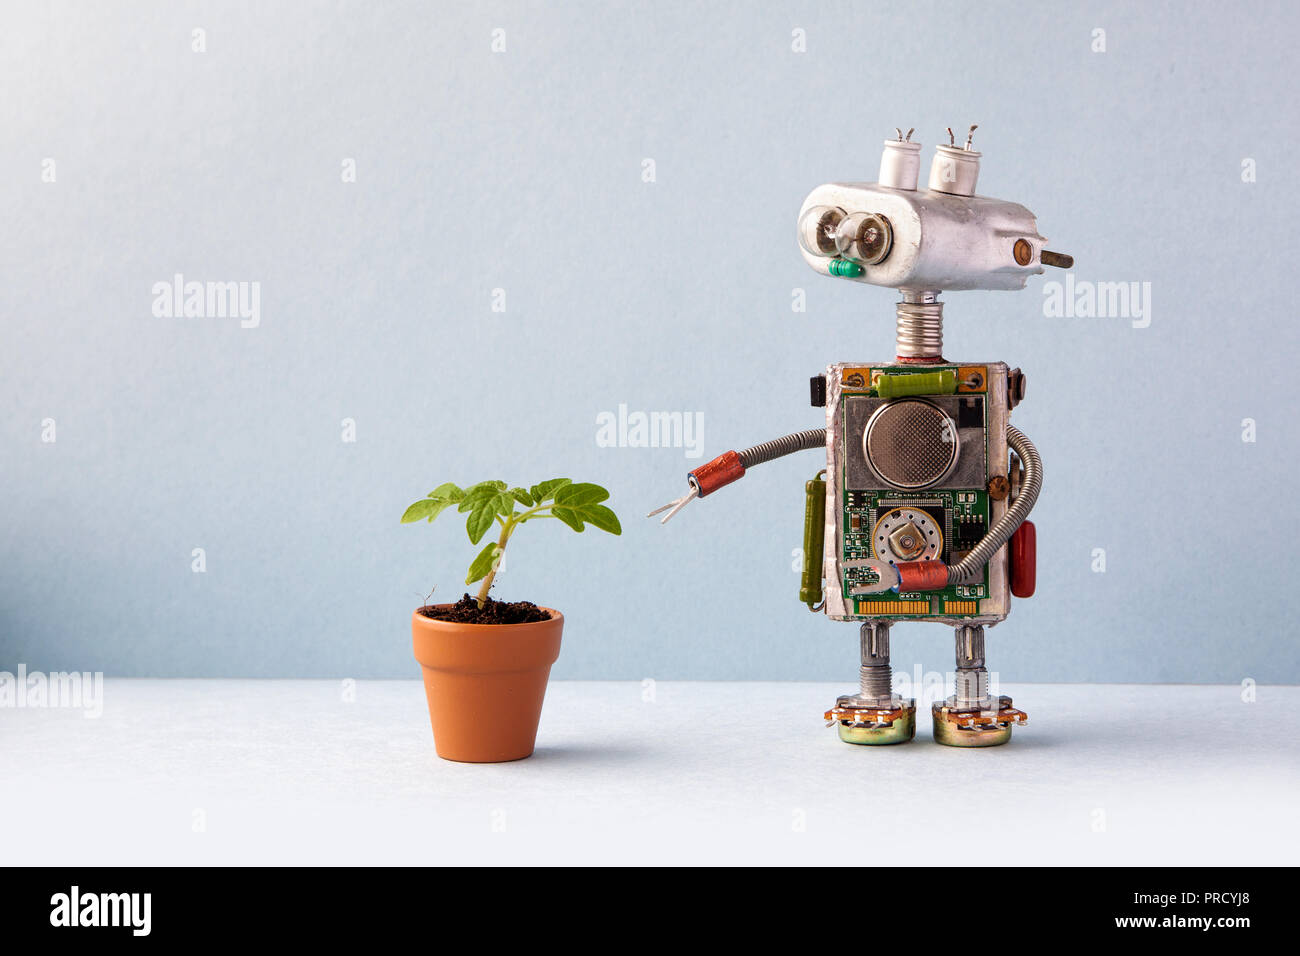 Robot with a small green sprout plant in a clay flower pot. Organic eco life concept. Gray wall background, copy space - Stock Image